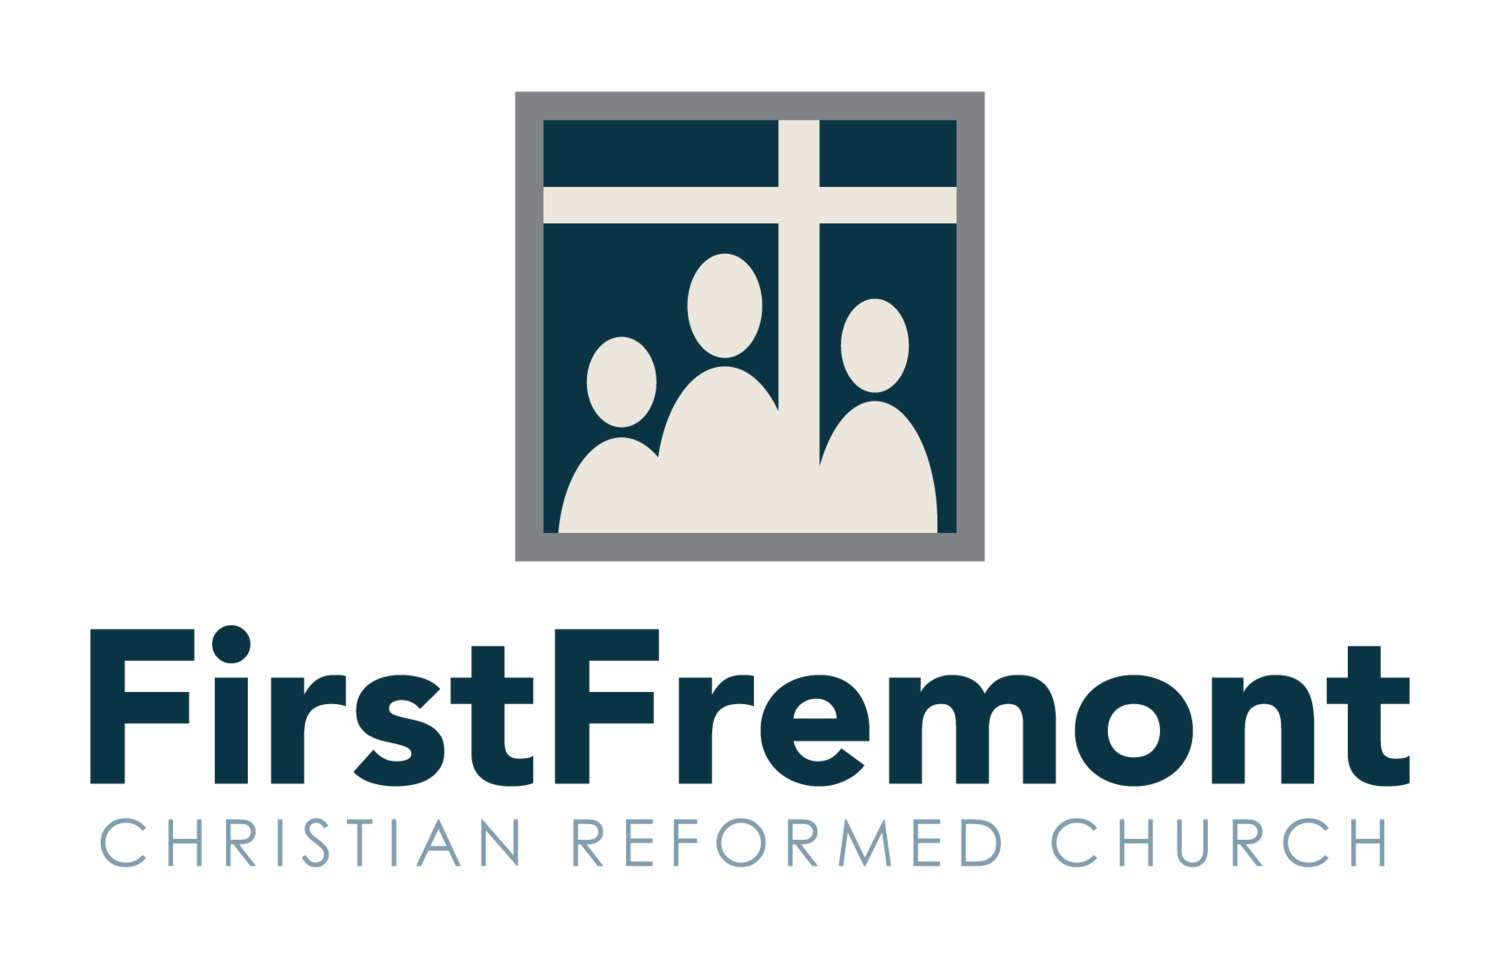 First Fremont Christian Reformed Church